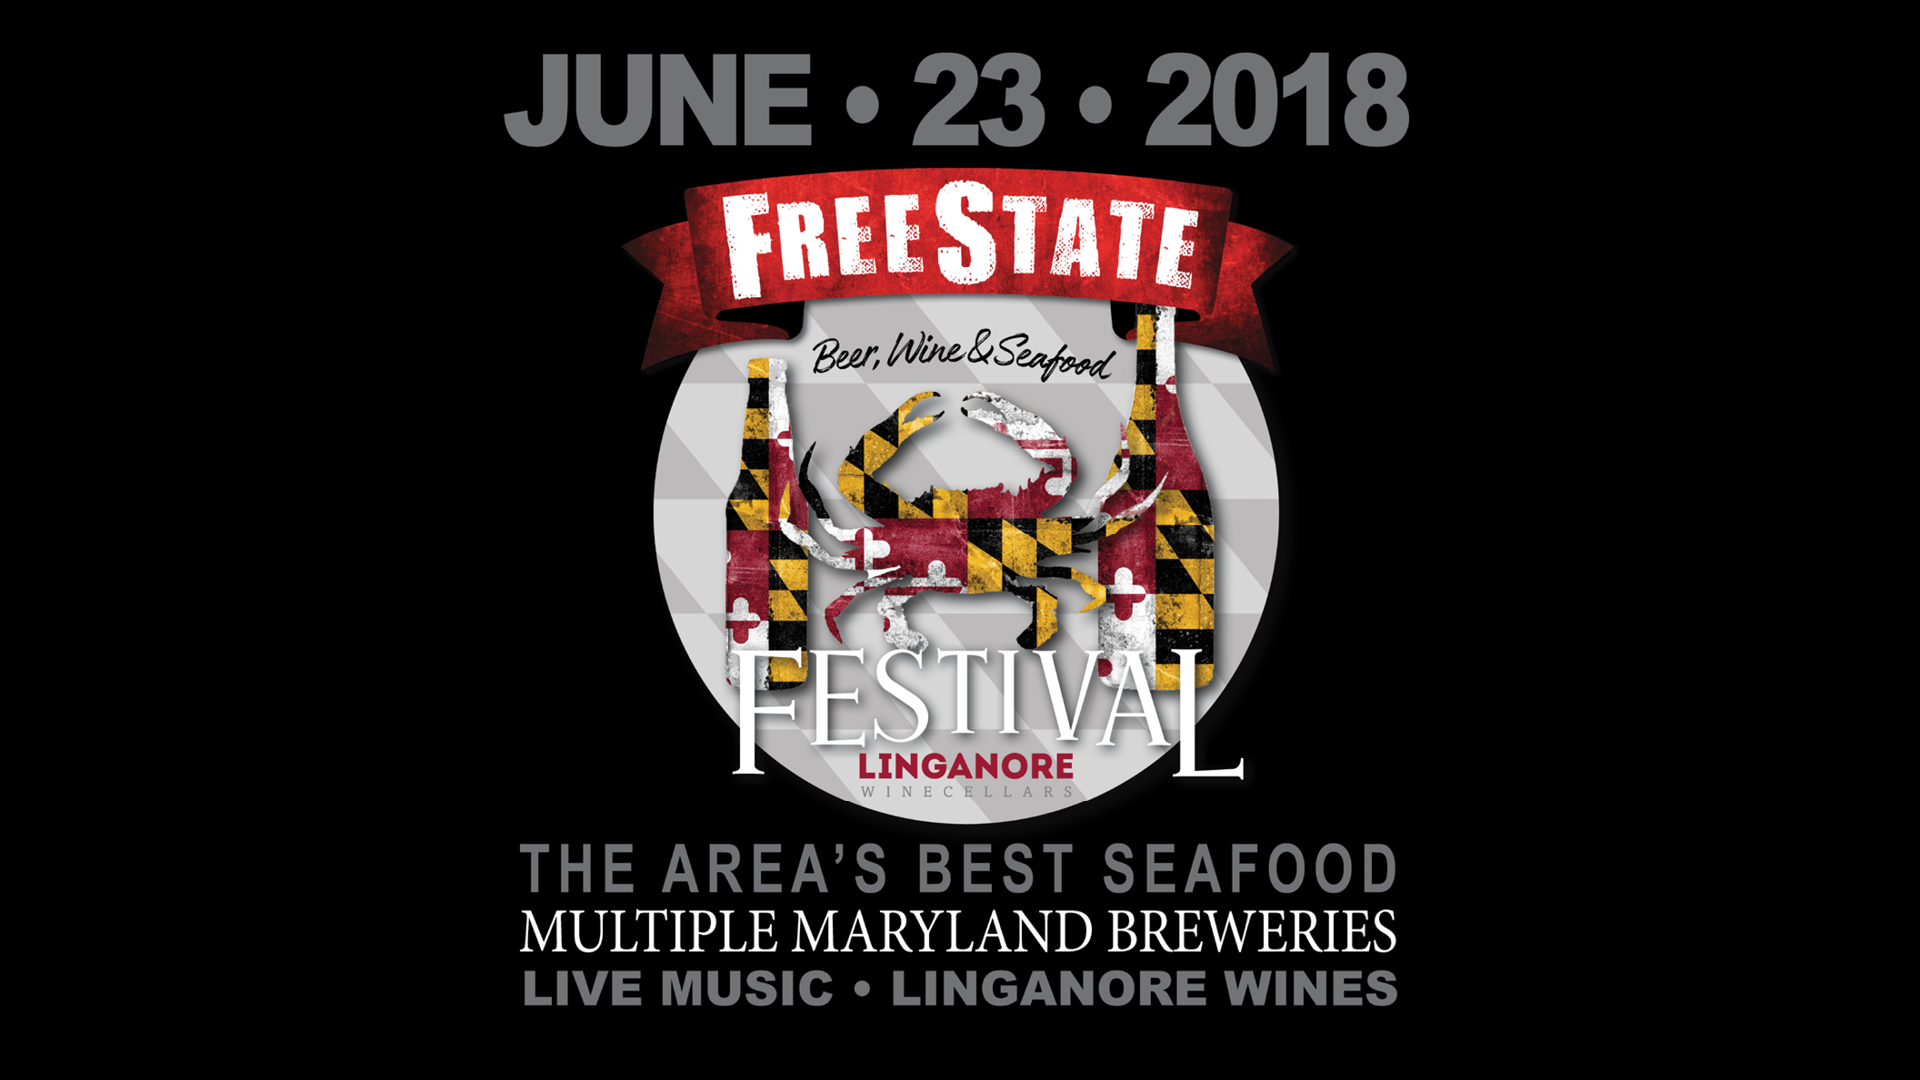 FreeState – Beer, Wine & Seafood Festival